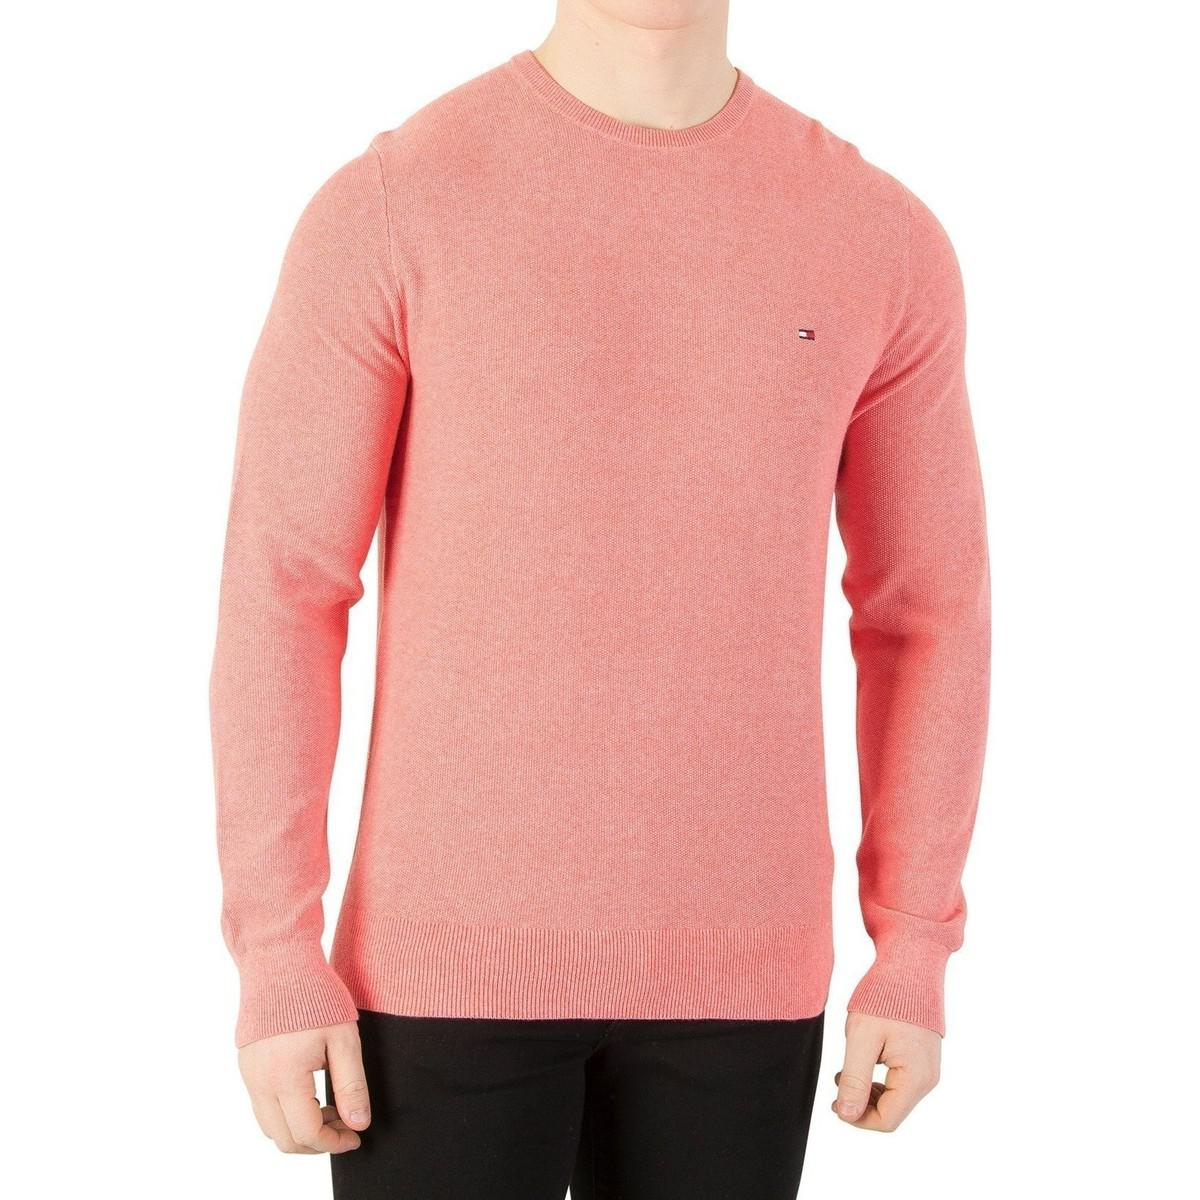 Wholesale Price For Sale Cheap Sale Countdown Package Mens Pre-Twisted Ricecorn Cneck Jumper Tommy Hilfiger uYgeR0MGg4